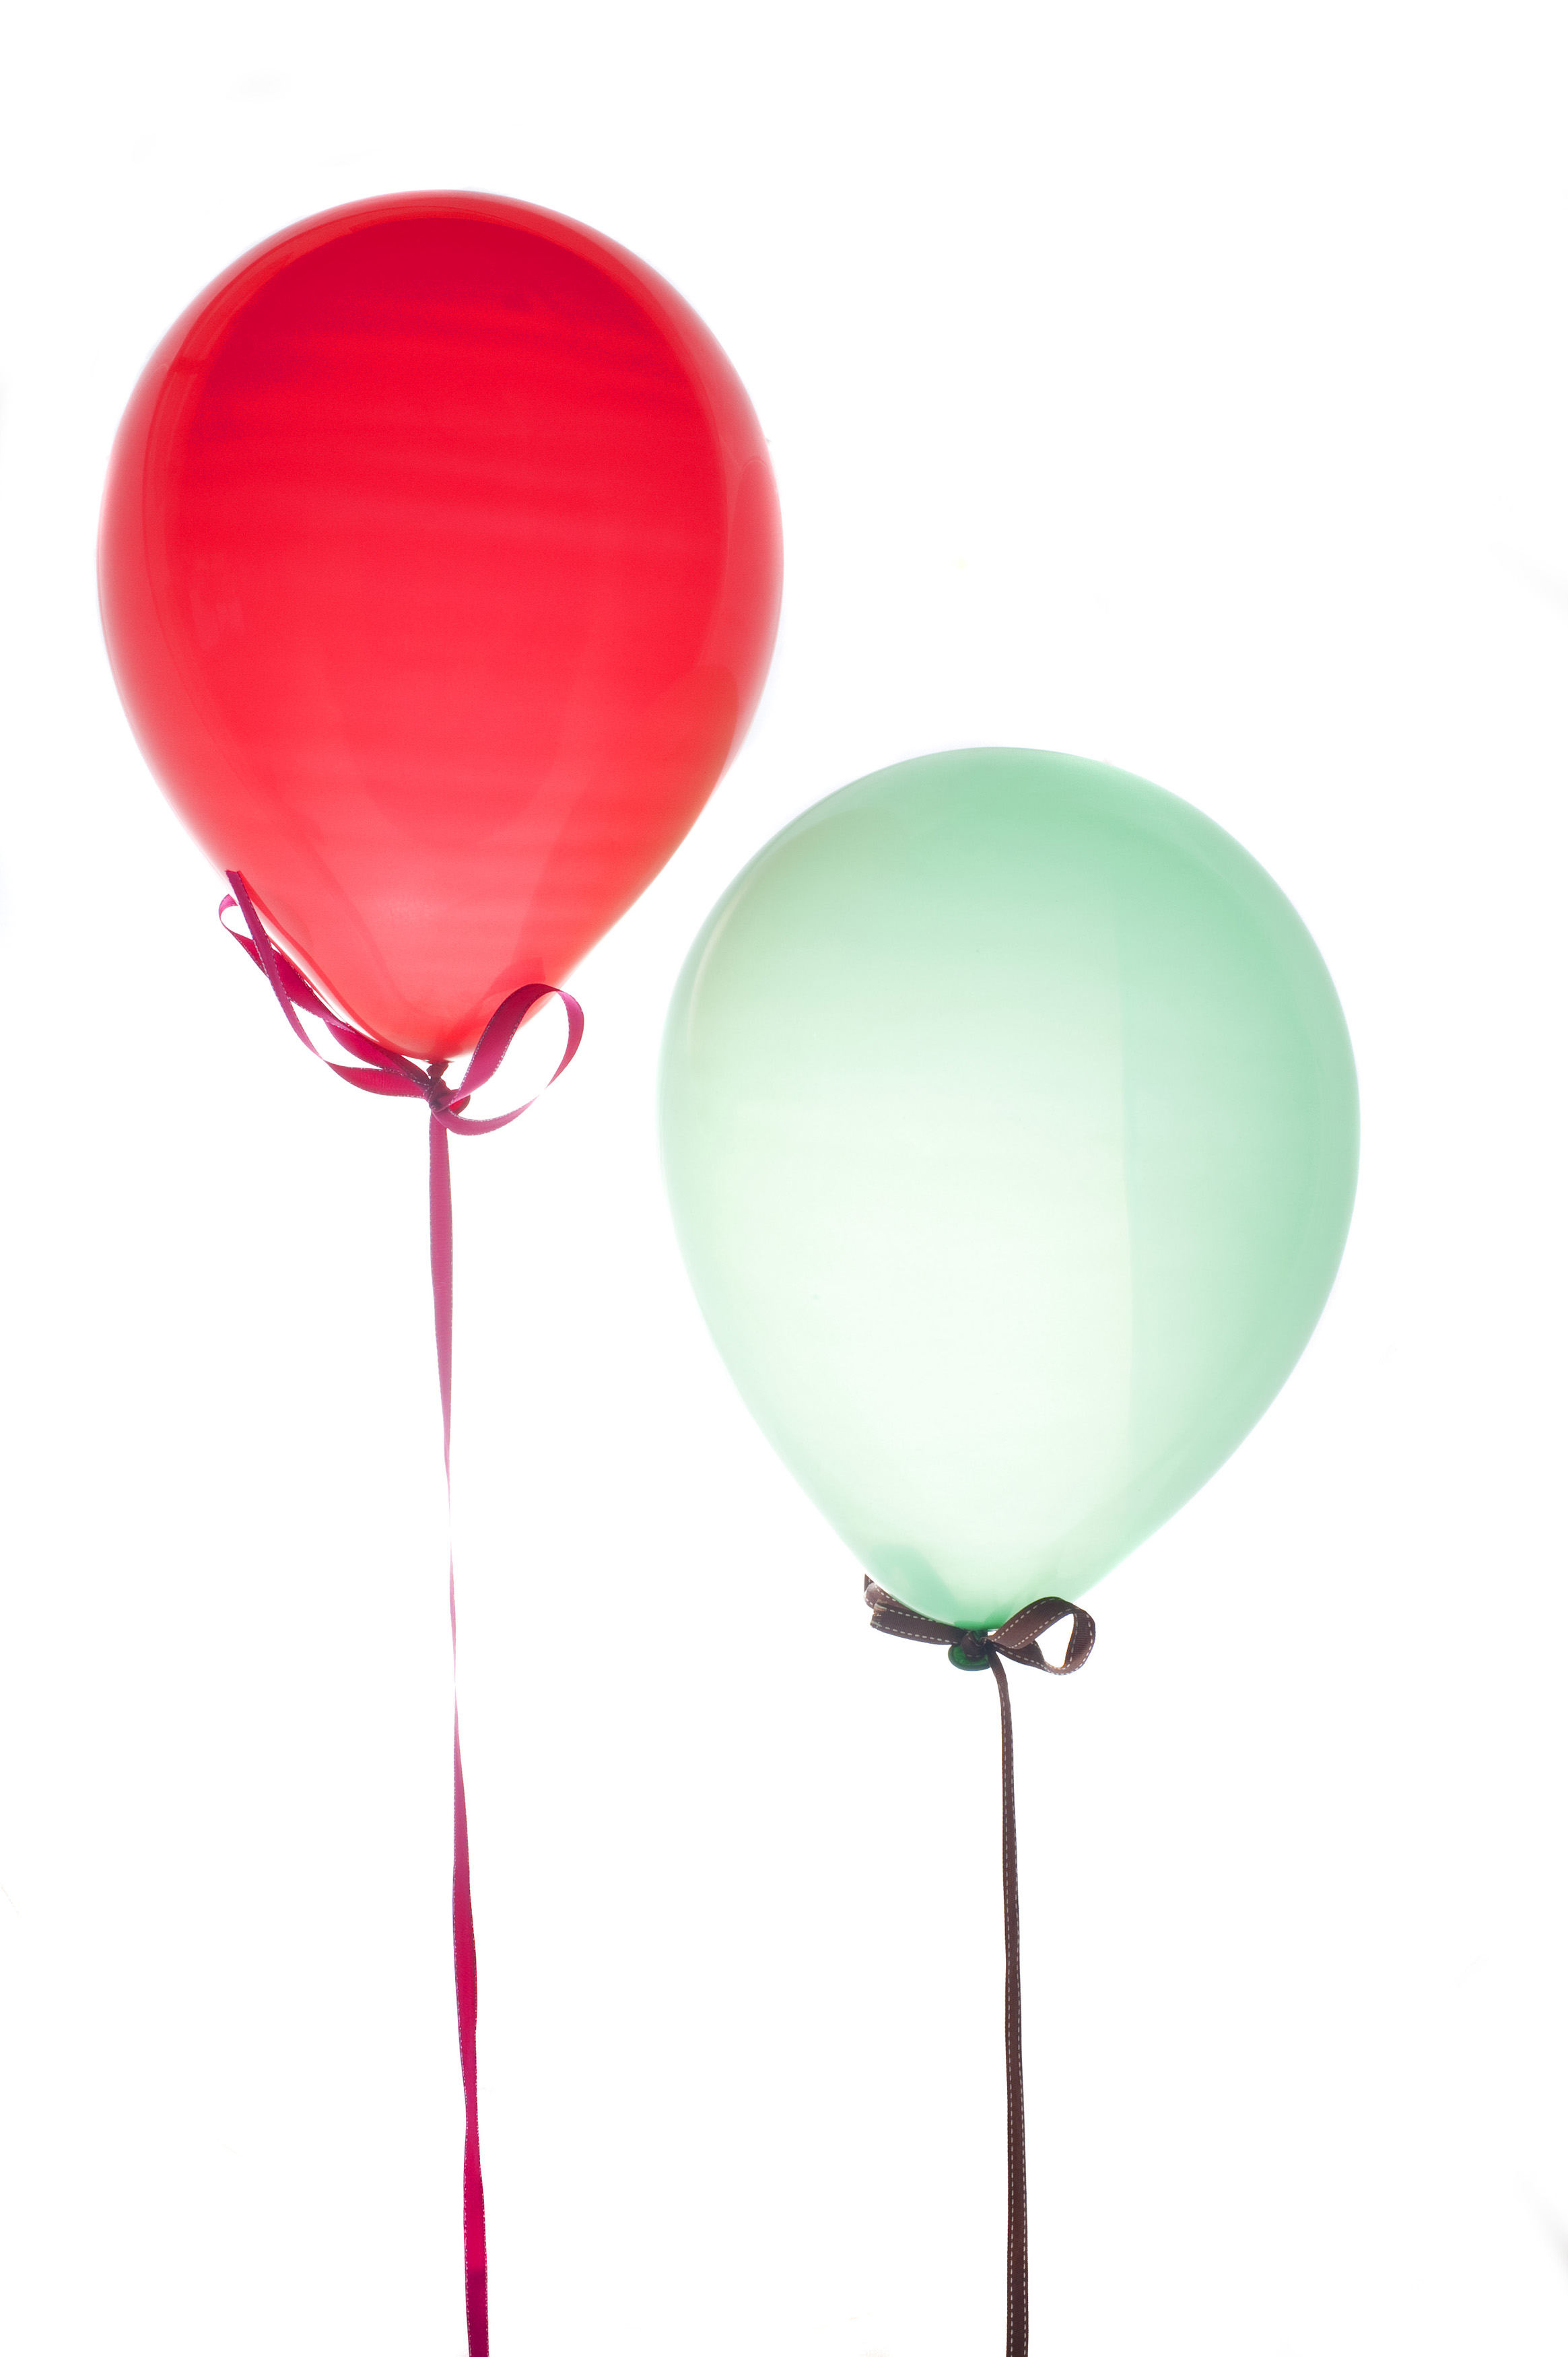 two balloons-2737 | Stockarch Free Stock Photos: stockarch.com/images/events/two-balloons-2737